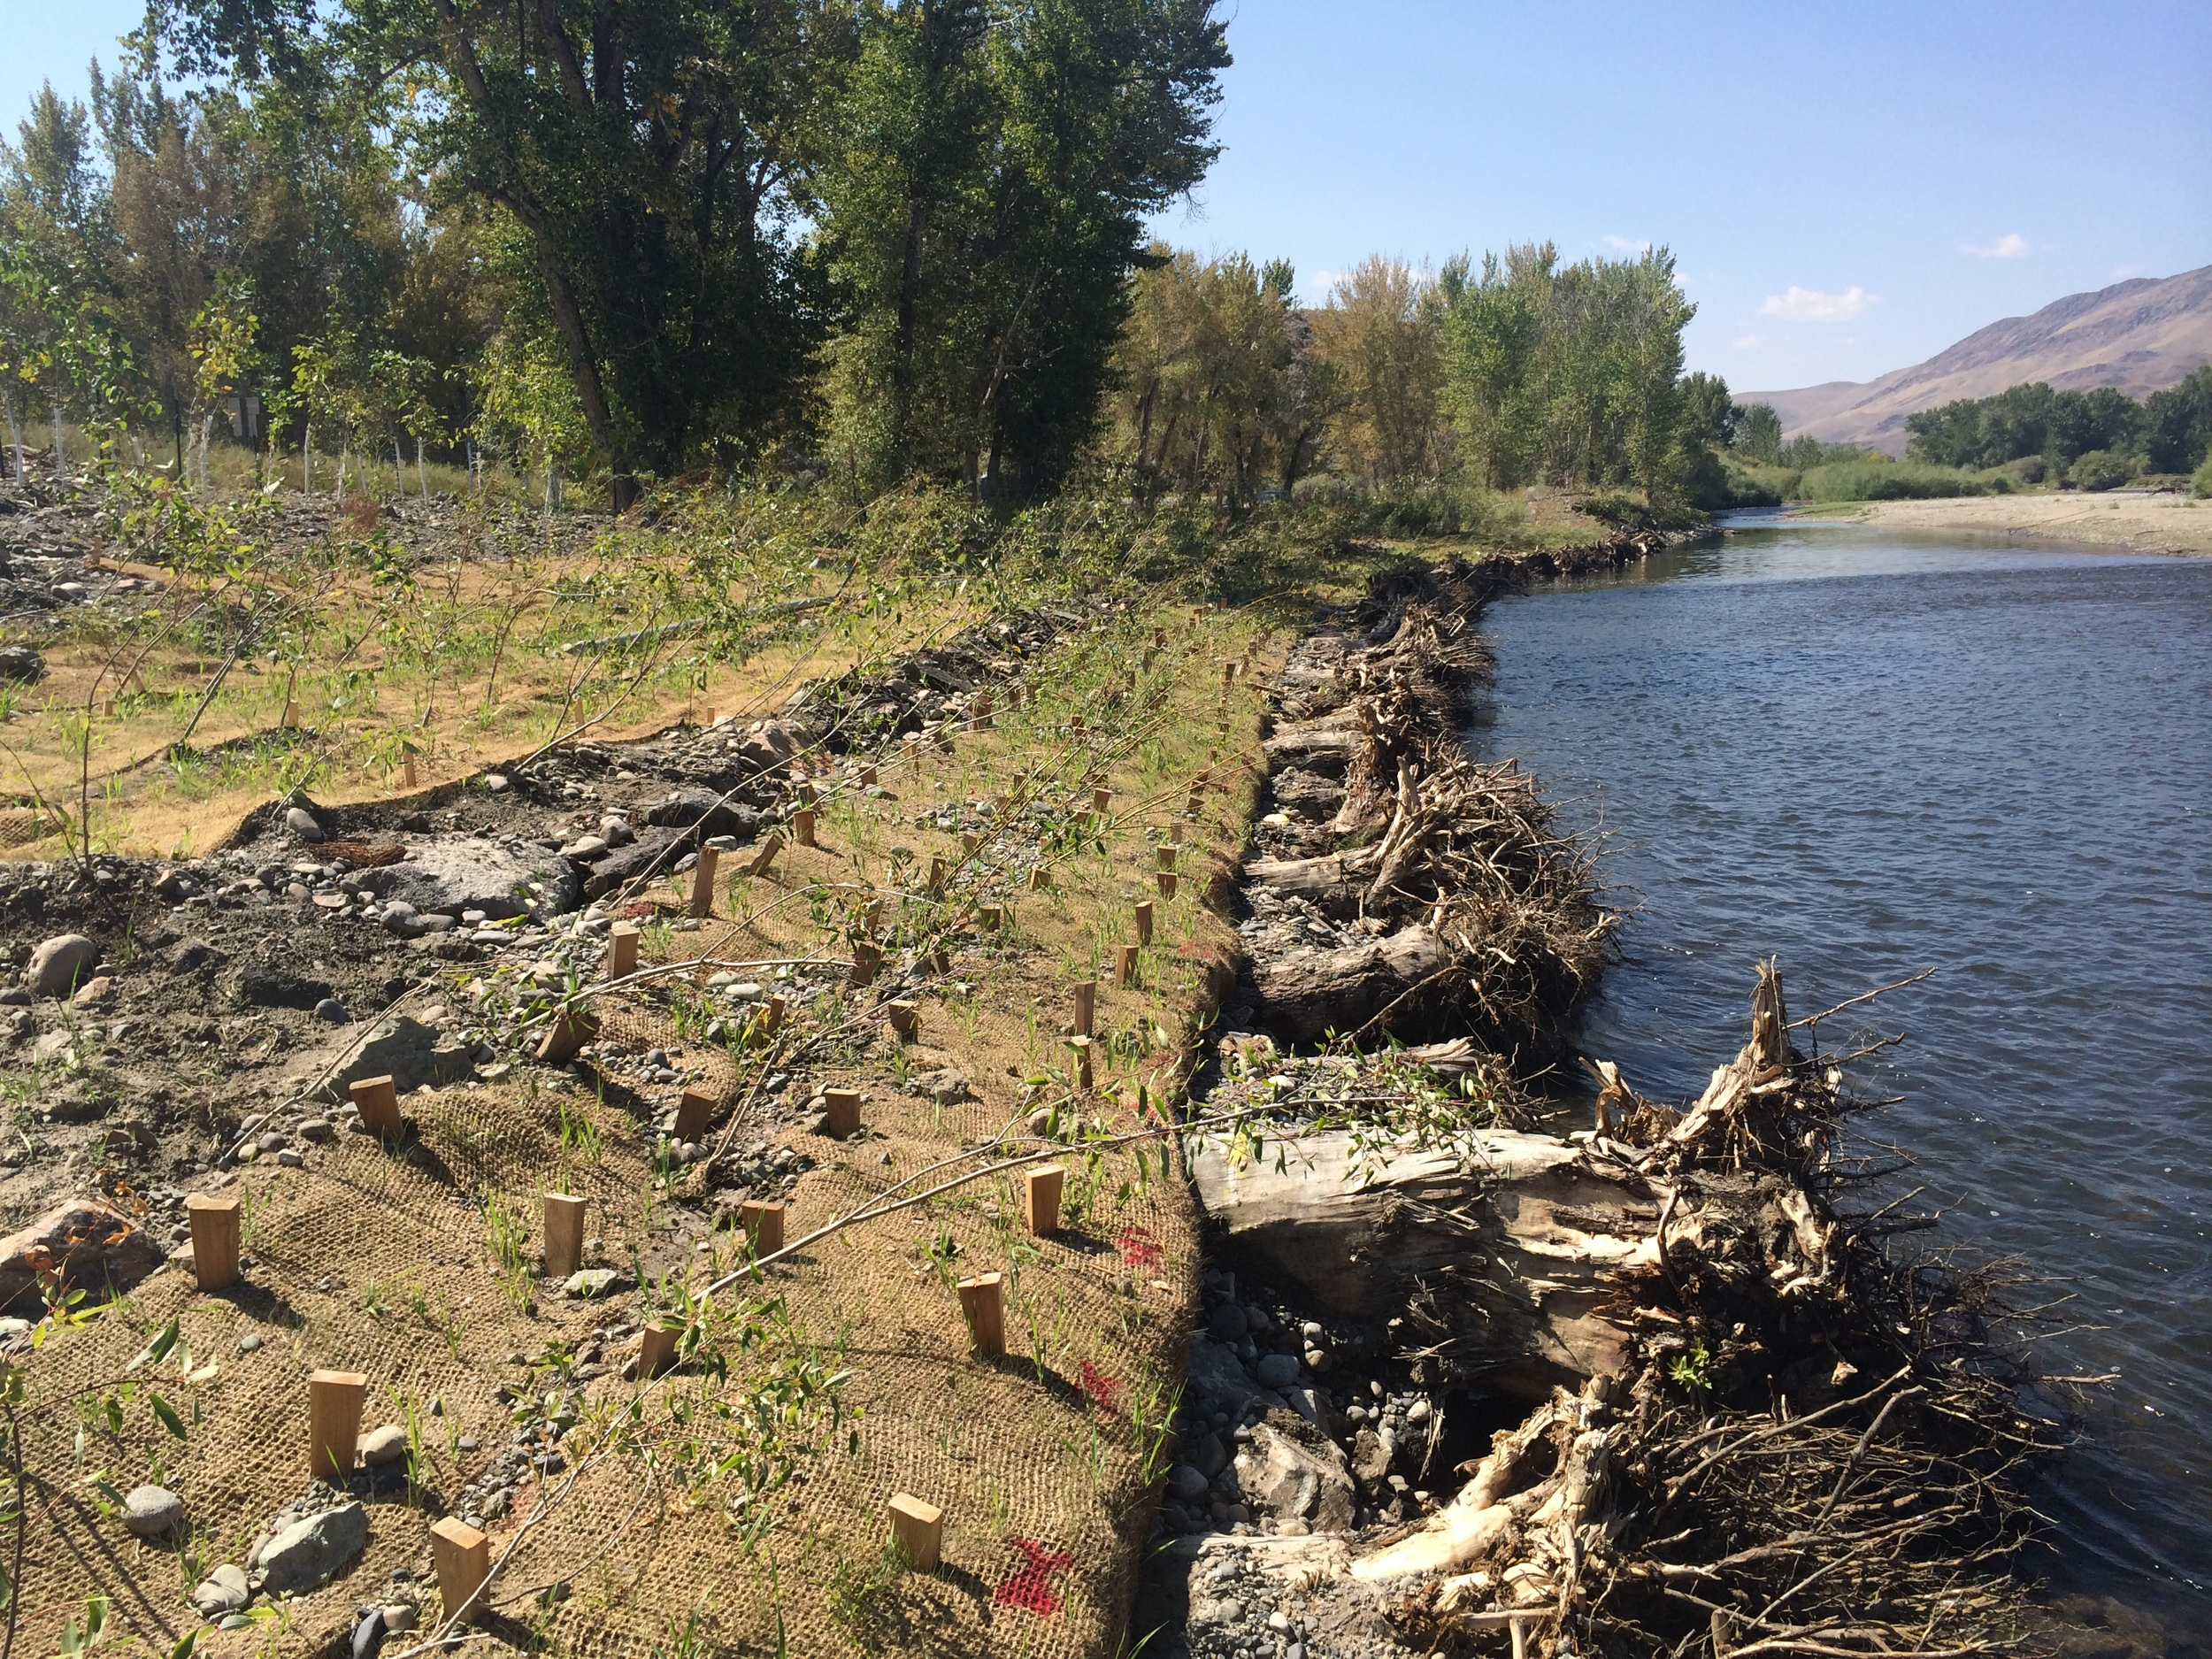 Stream restoration bank stabilized by logs with rootwads, erosion control fabric, and willow plantings